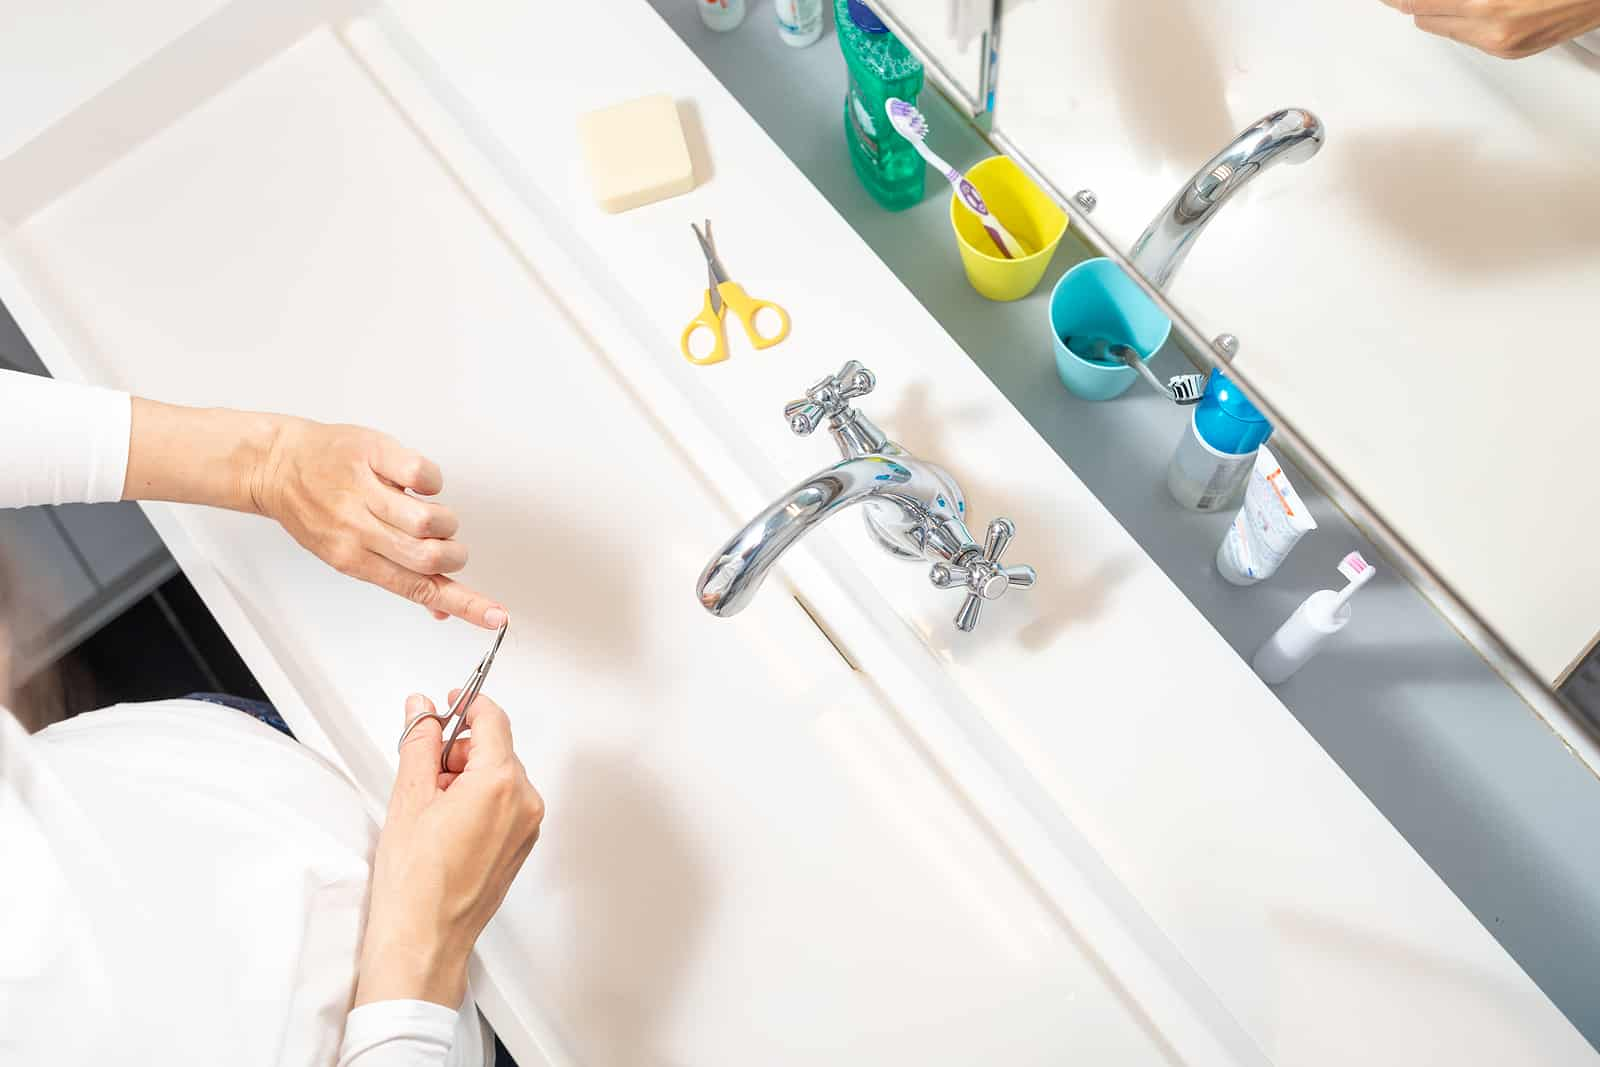 Hormones and nail growth- woman standing at sink using nail products for home manicure